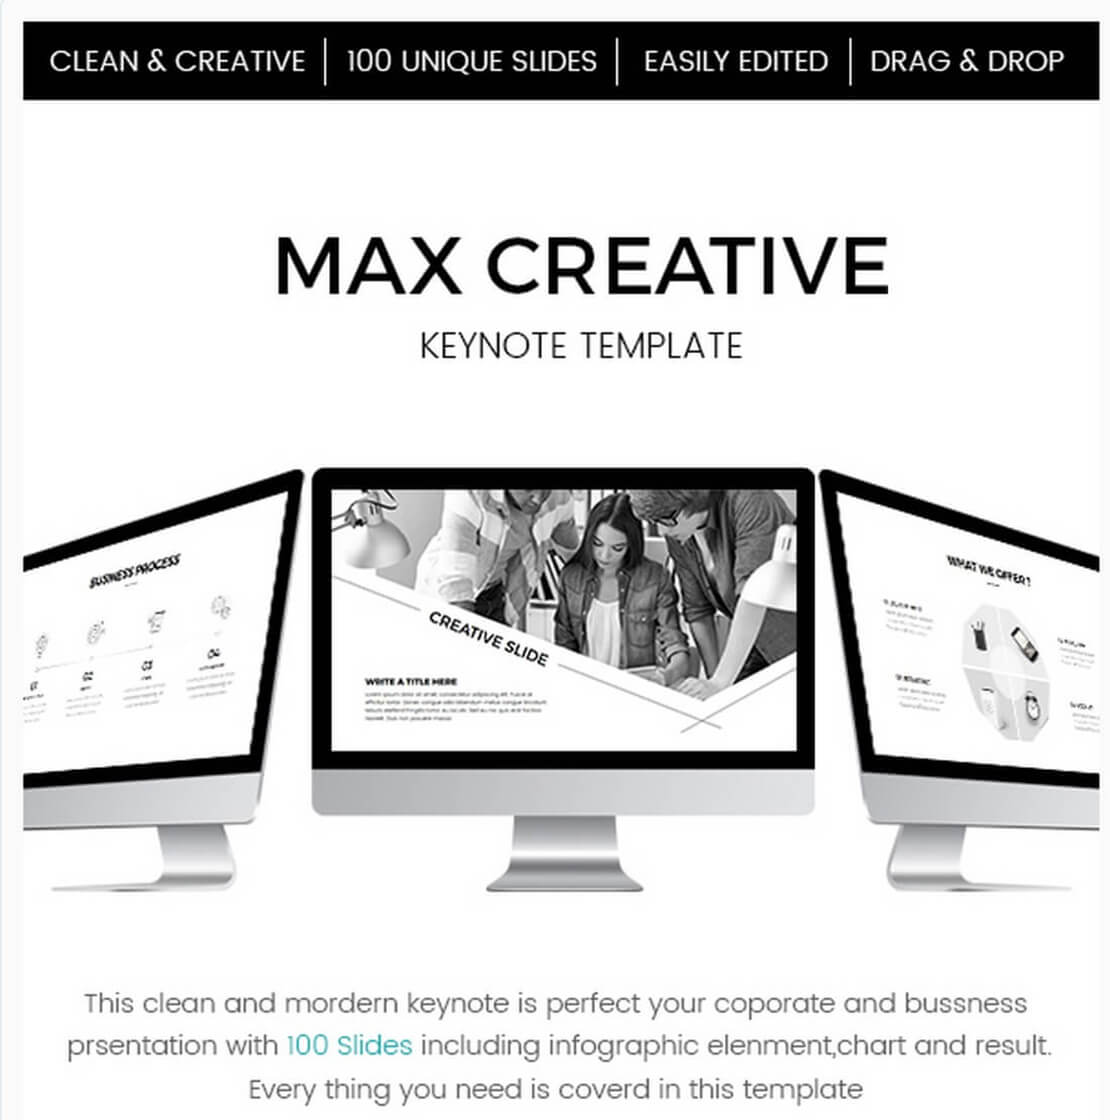 max creative For Best Keynote Template